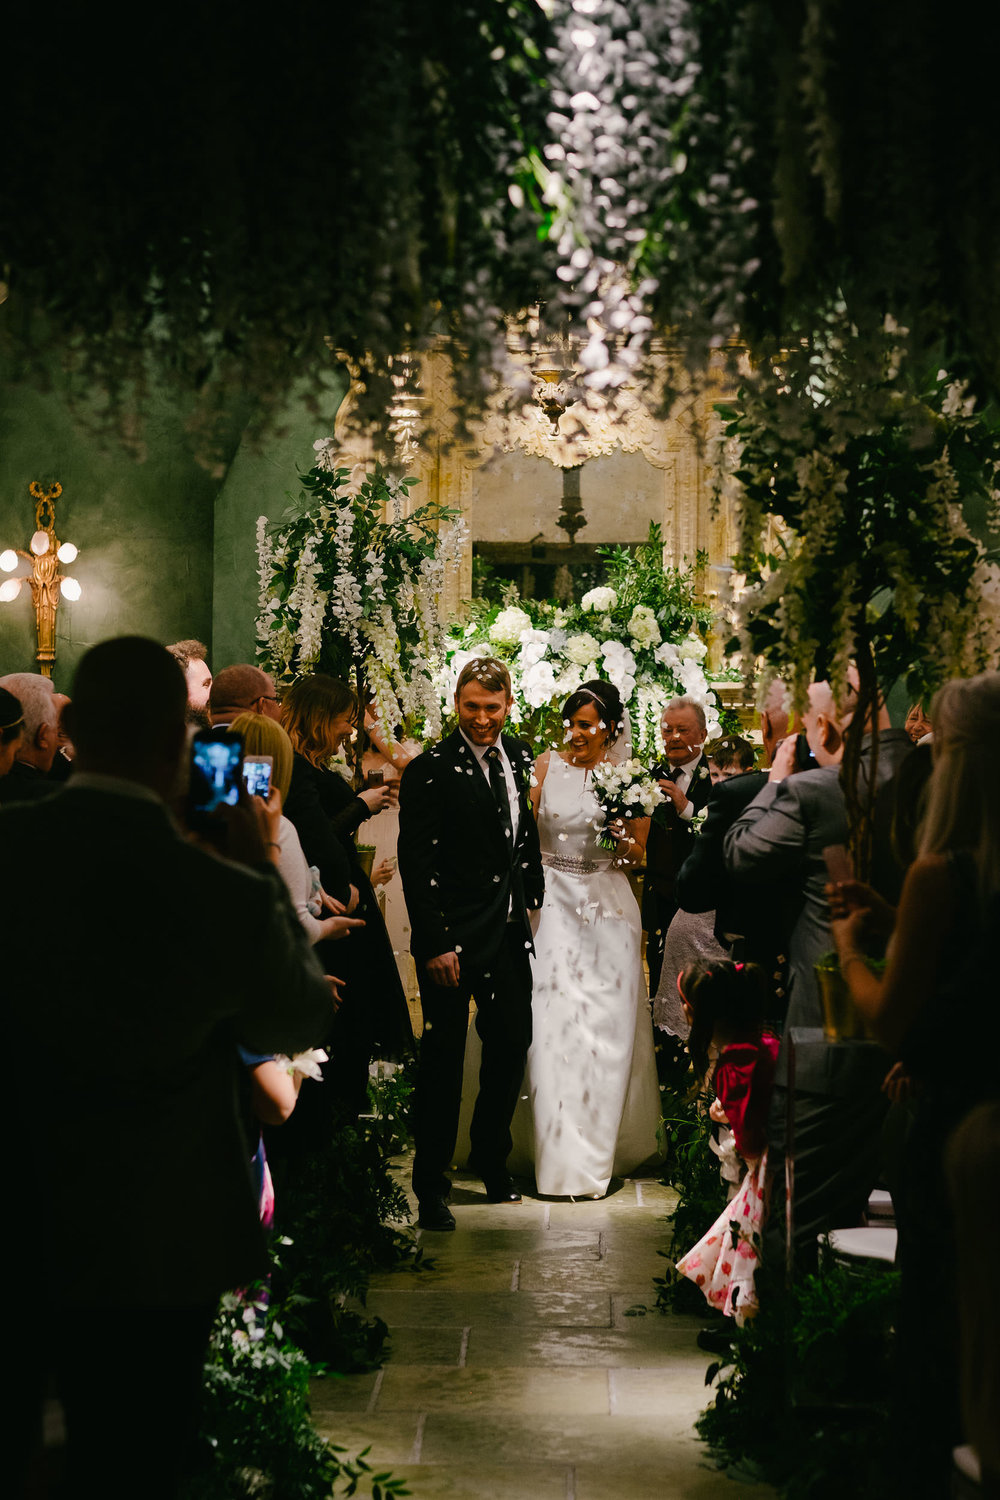 Bride and groom leave ceremony under canopy of flowers